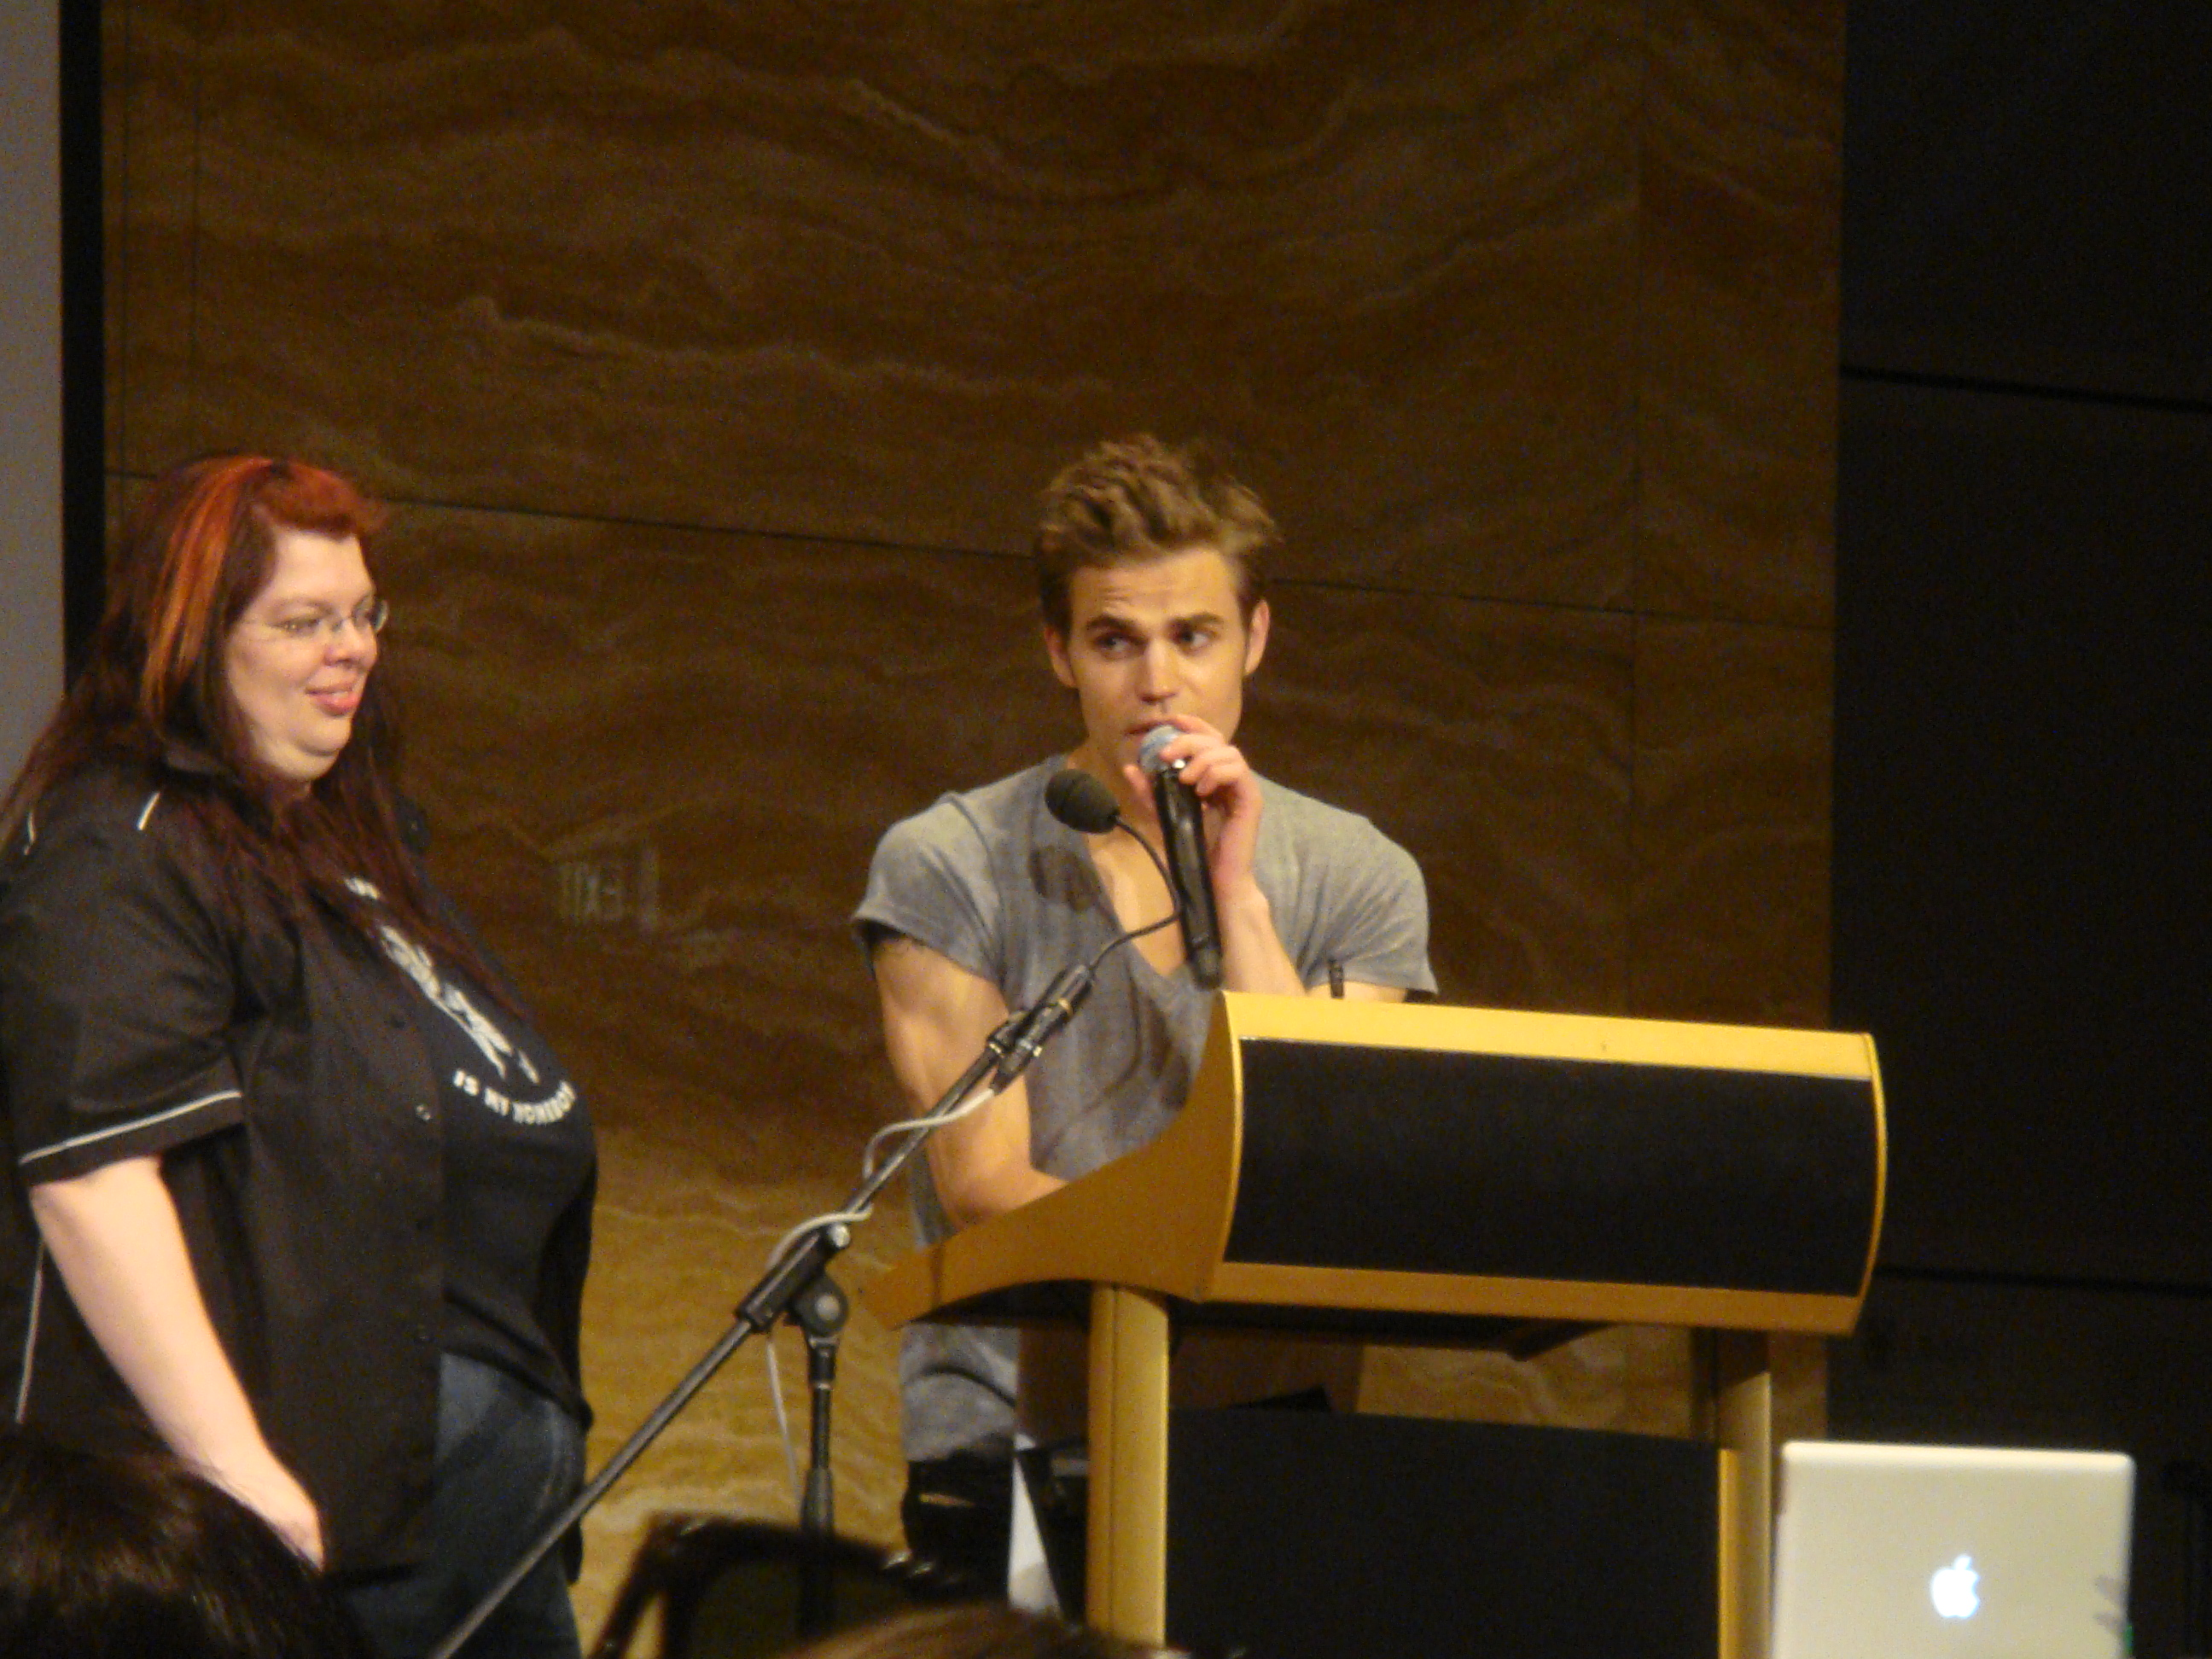 Vampire Diaries Convention  U2013 Sydney  03 07 2010